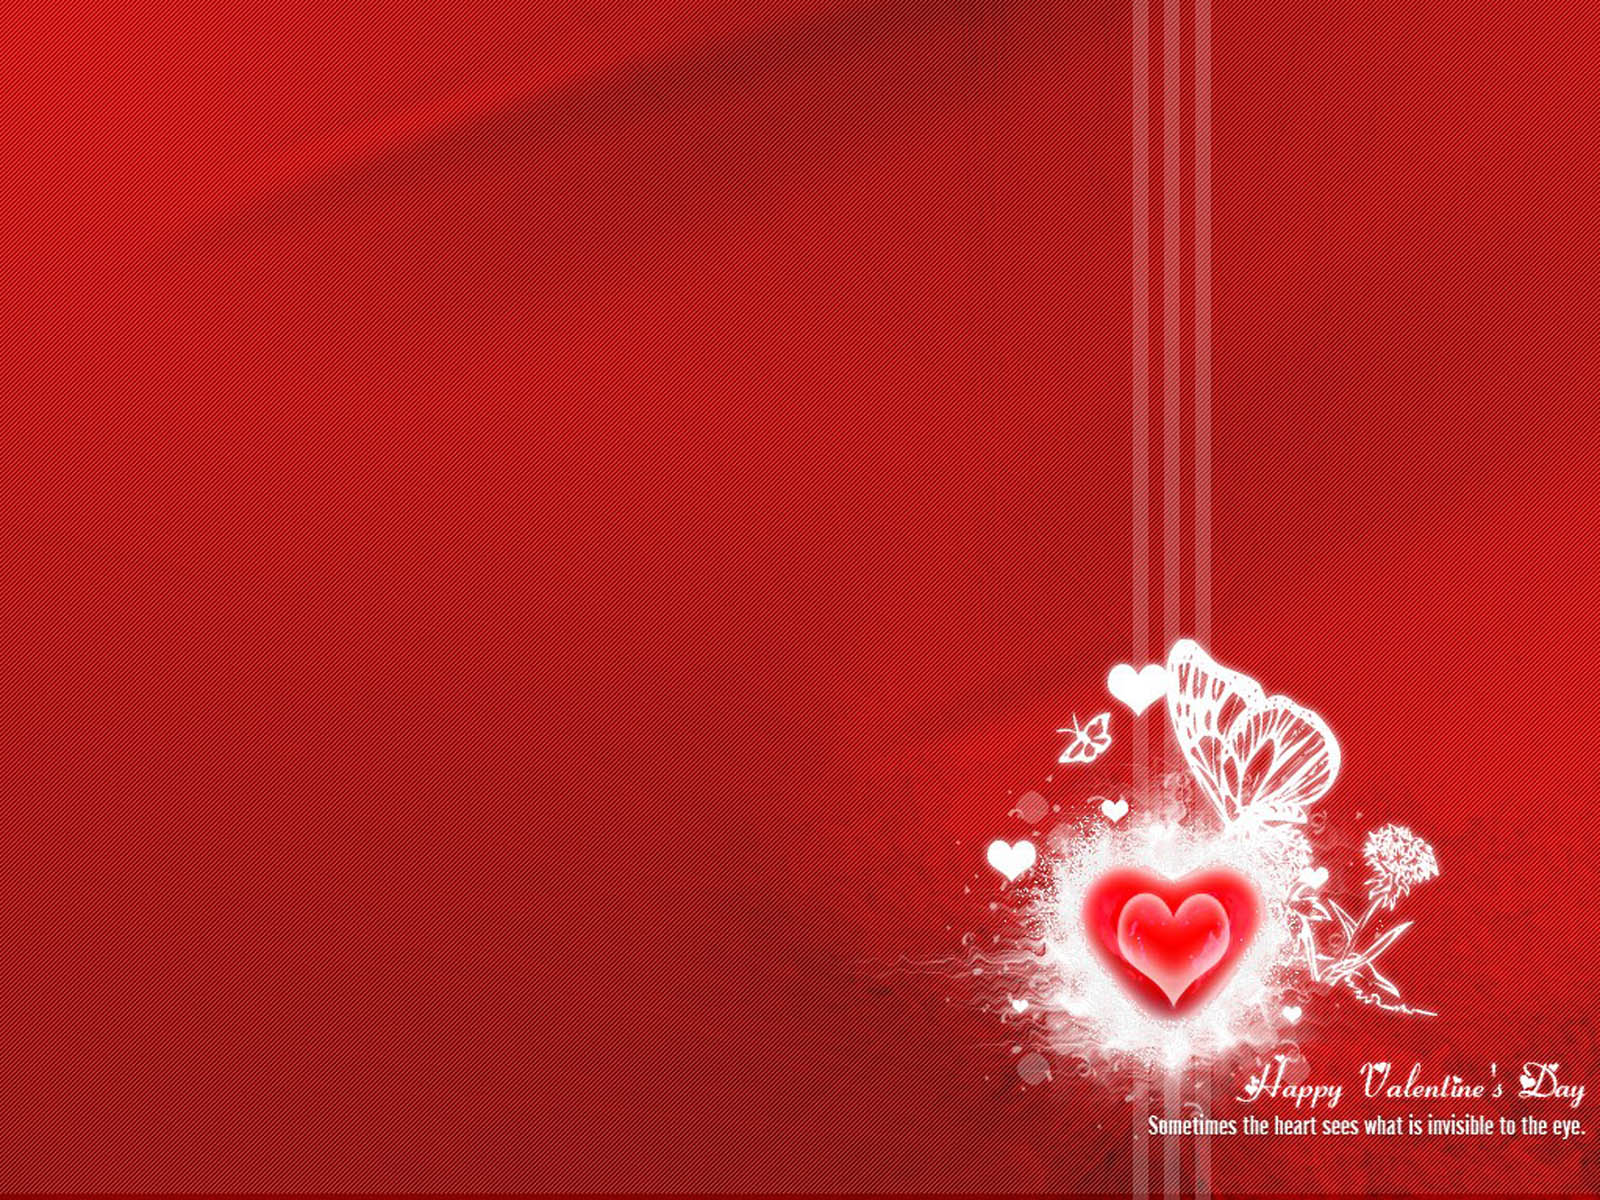 wallpapers valentines day backgrounds